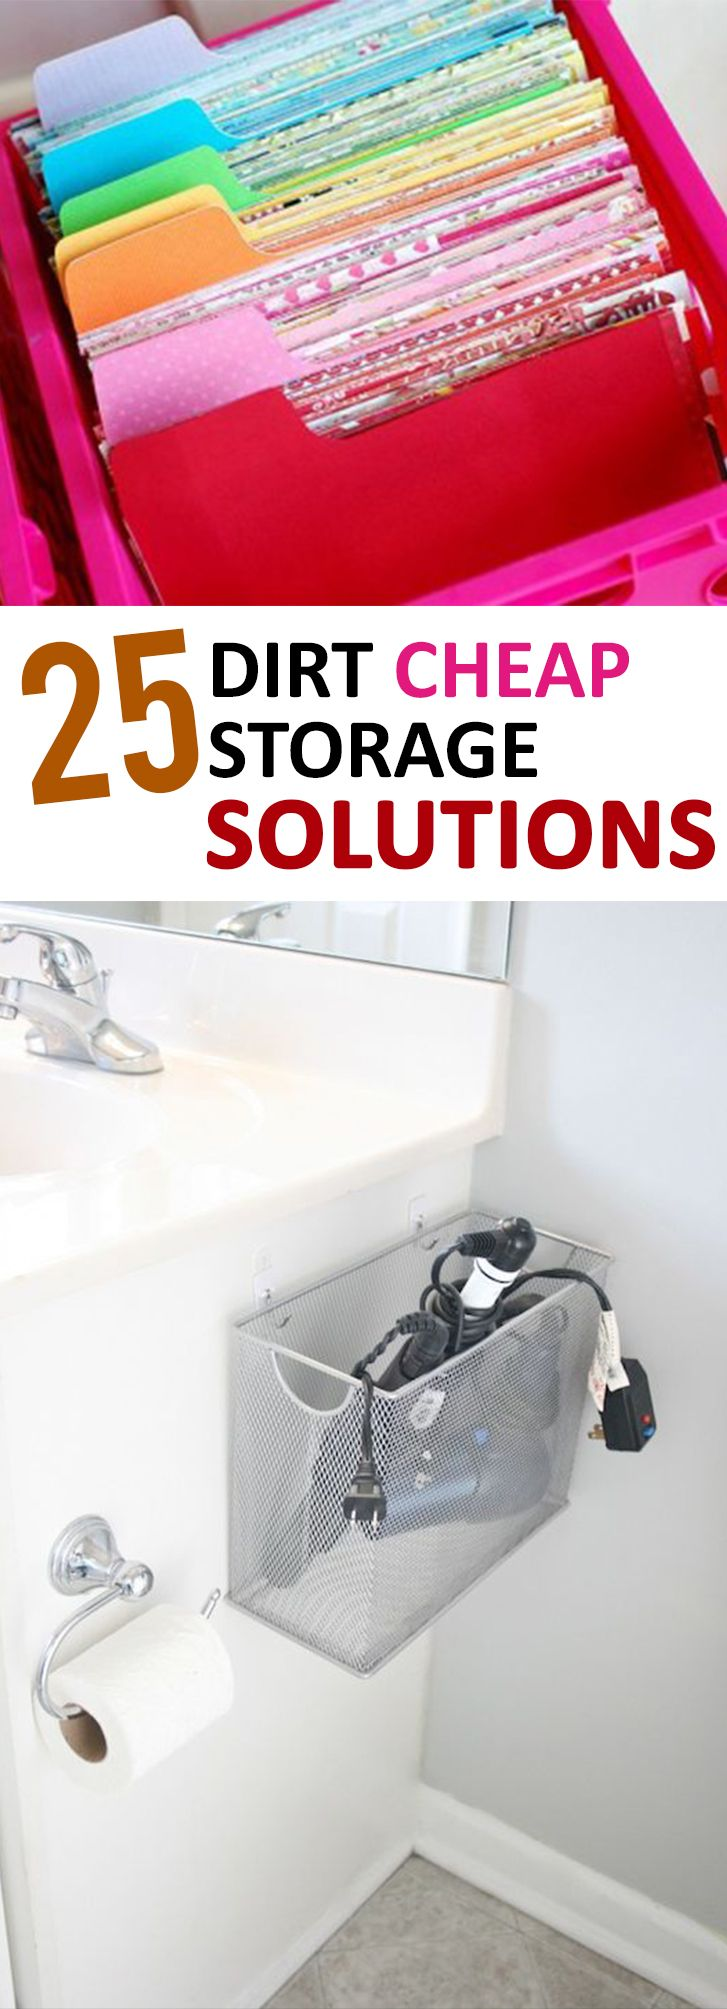 25 dirt cheap storage solutions haushalte hacks und tipps. Black Bedroom Furniture Sets. Home Design Ideas